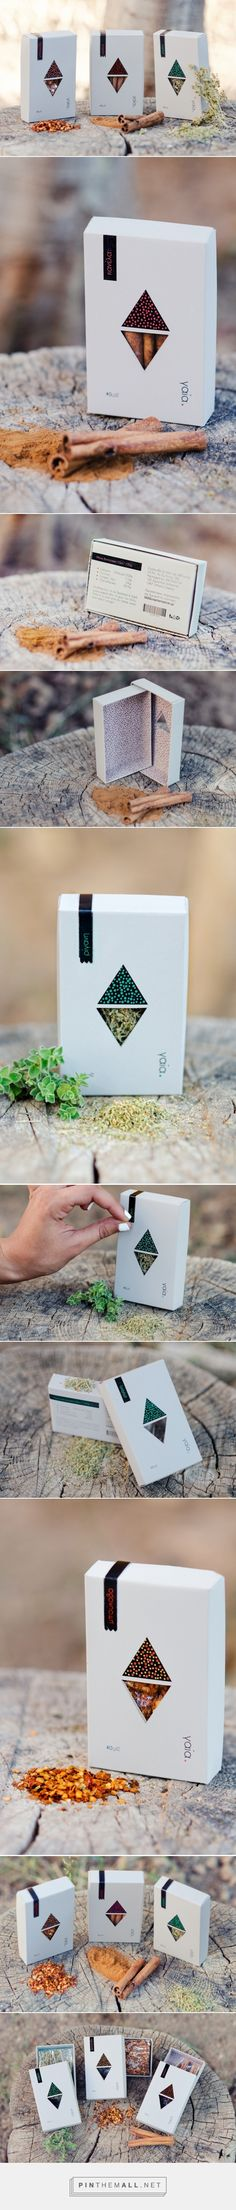 γαία Spice Packaging (Student Project) - Packaging of the World - Creative Package Design Gallery - http://www.packagingoftheworld.com/2016/06/spice-packaging-student-project.html